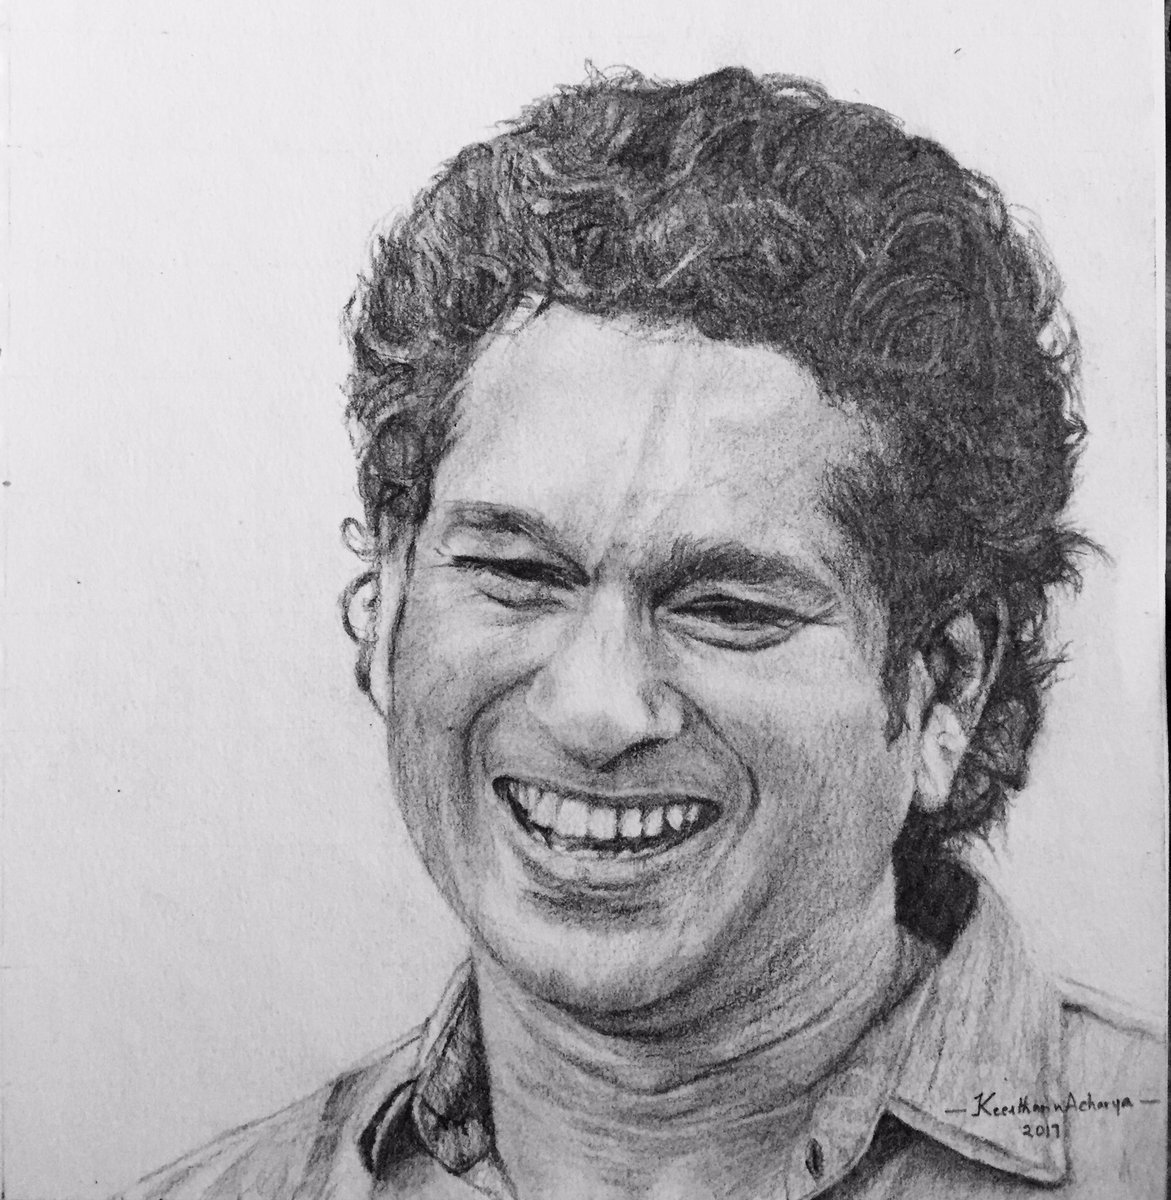 Keerthan sketches on twitter pencil sketch of sachin rt graphite